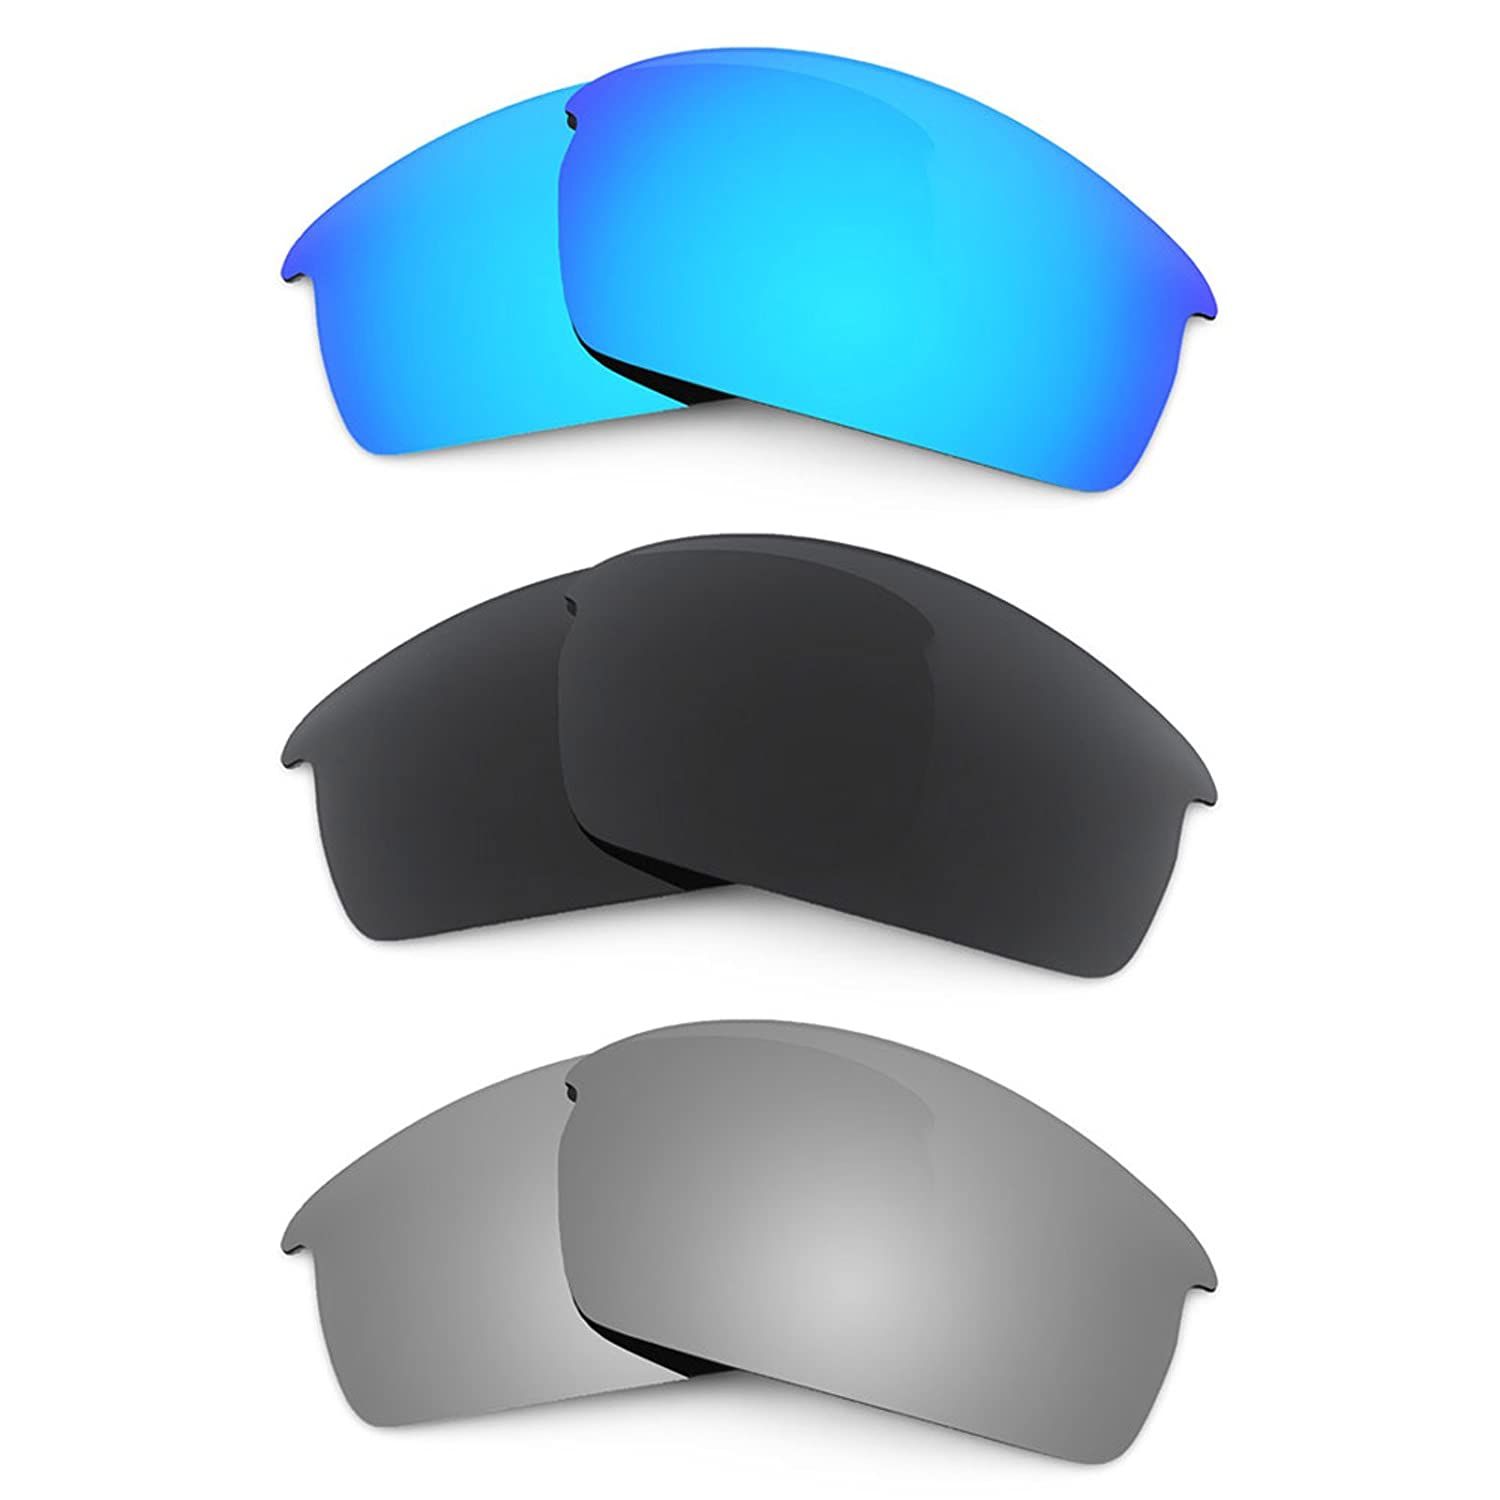 535b15aa34 Amazon.com  Revant Replacement Lenses for Oakley Bottlecap 3 Pair Combo  Pack K015  Clothing